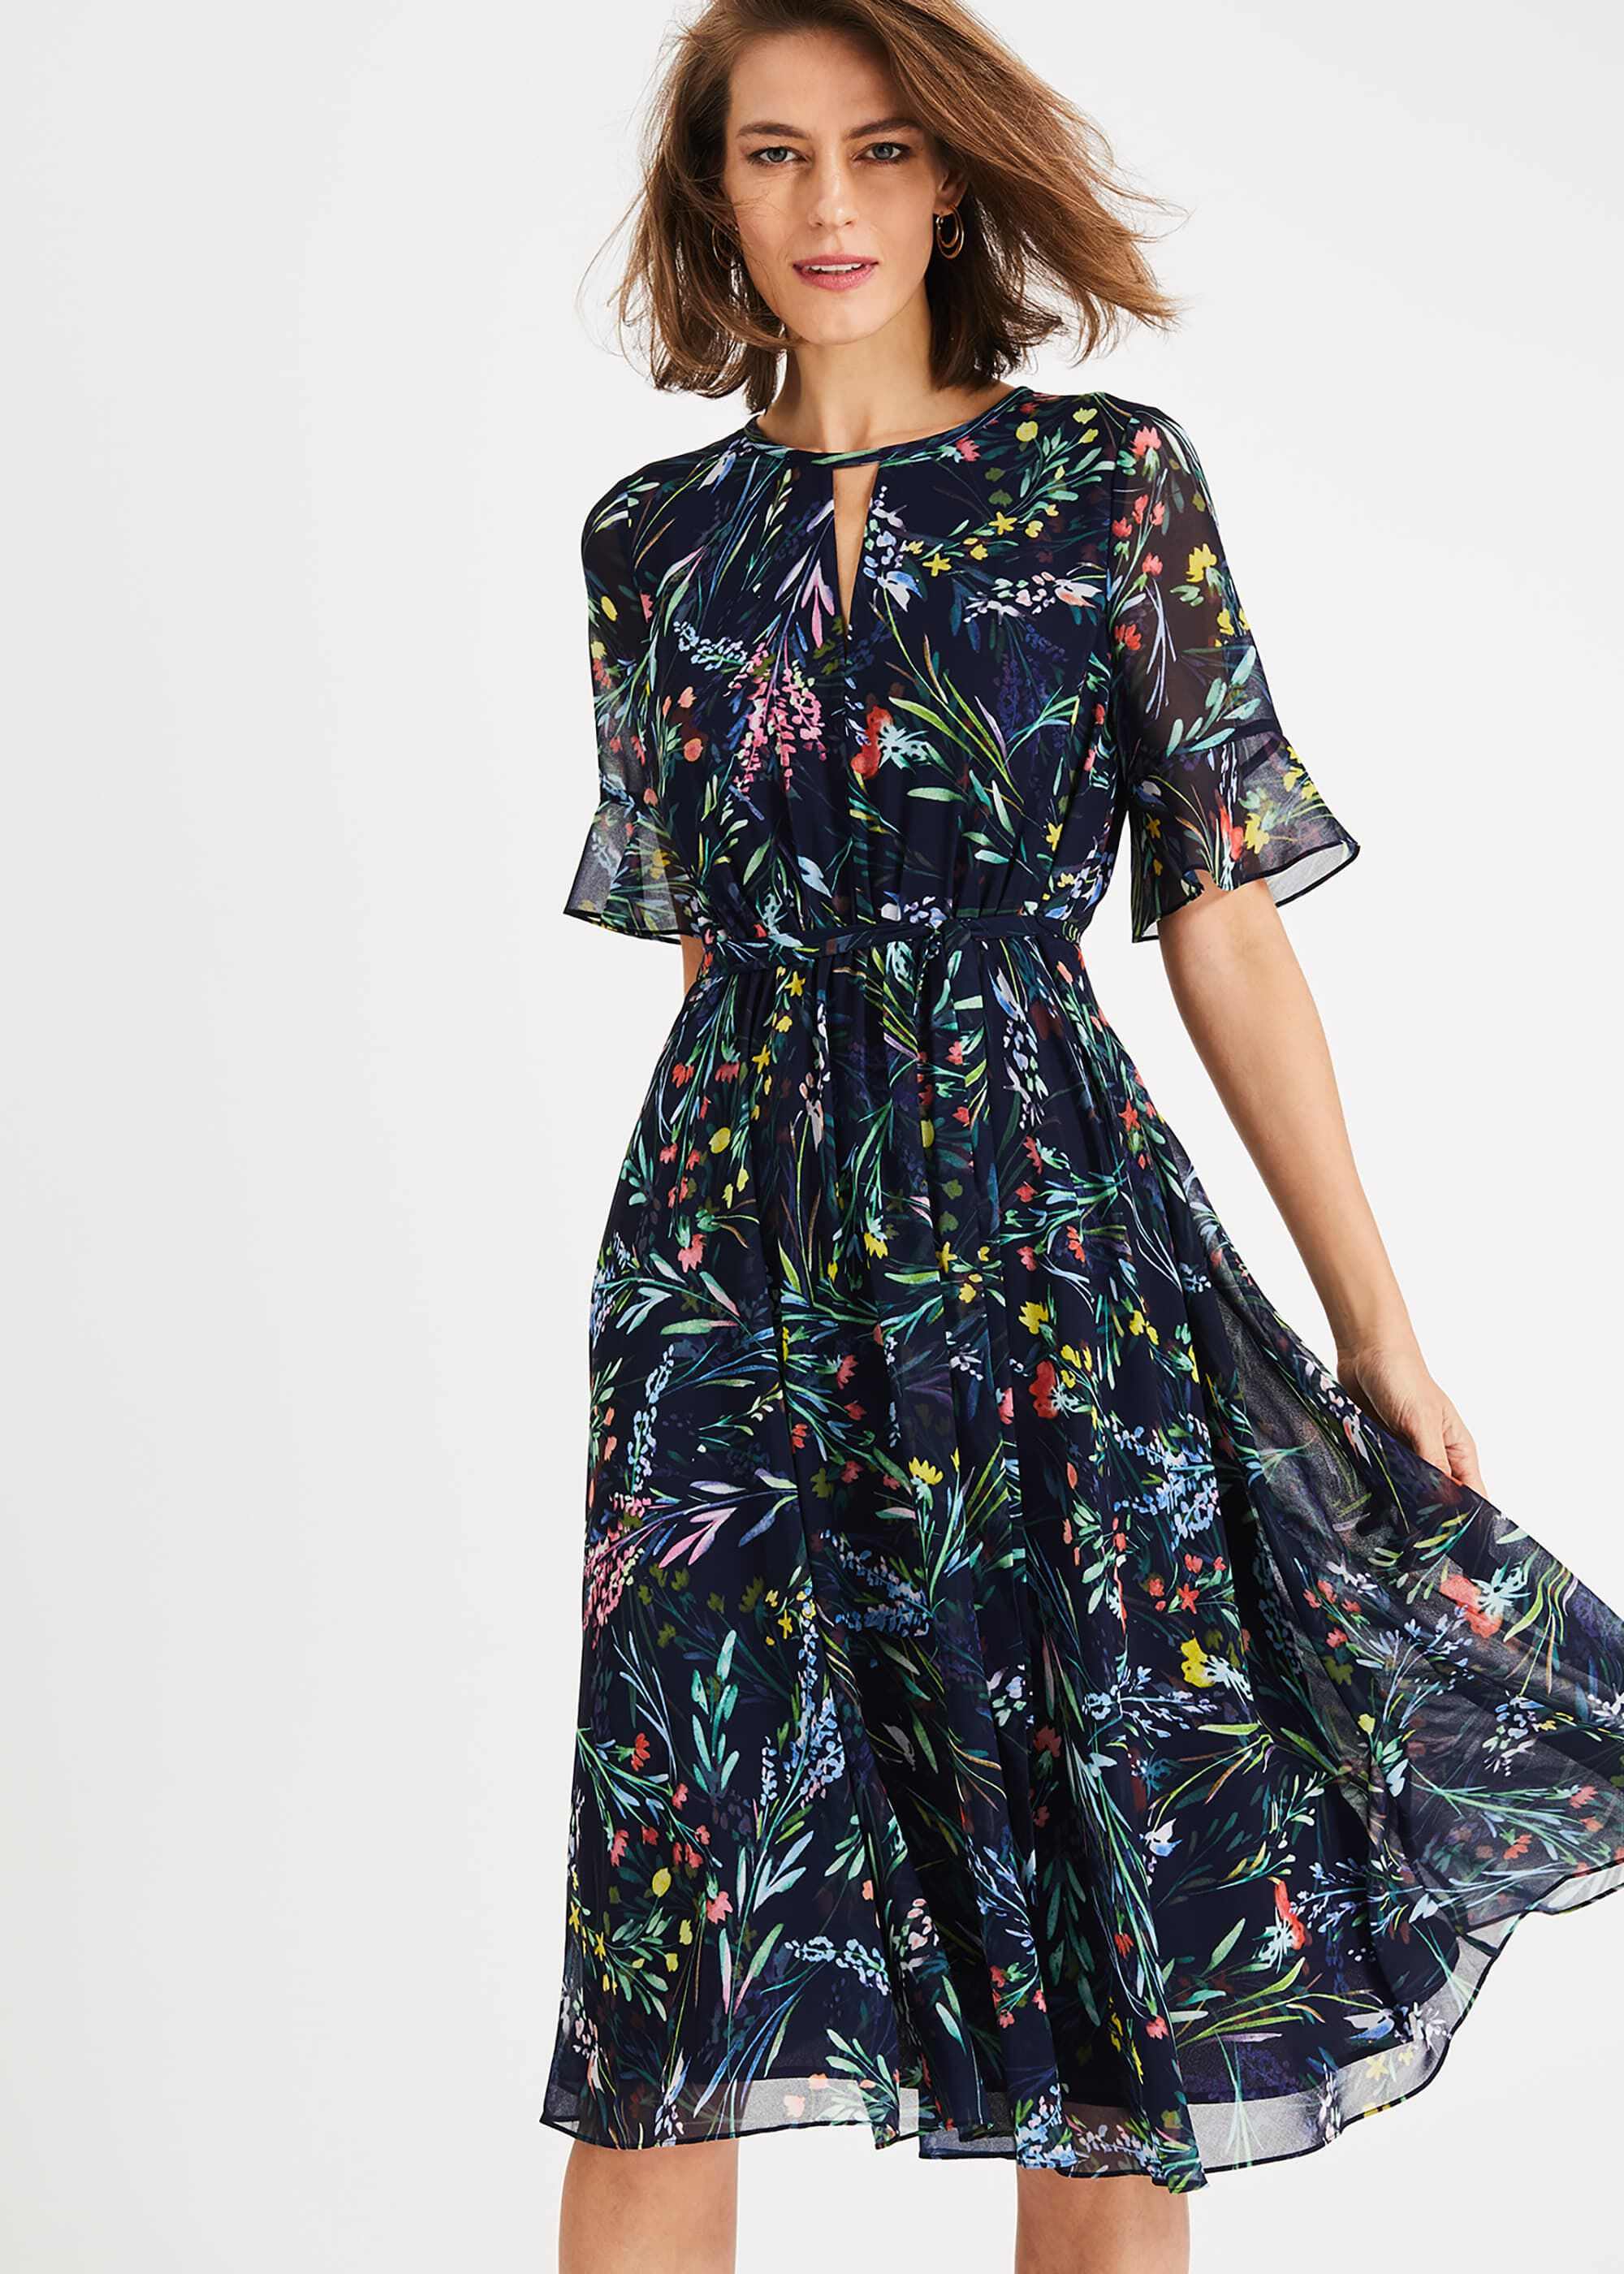 Phase Eight Kristen Floral Print Dress, Blue, Fit & Flare, Occasion Dress